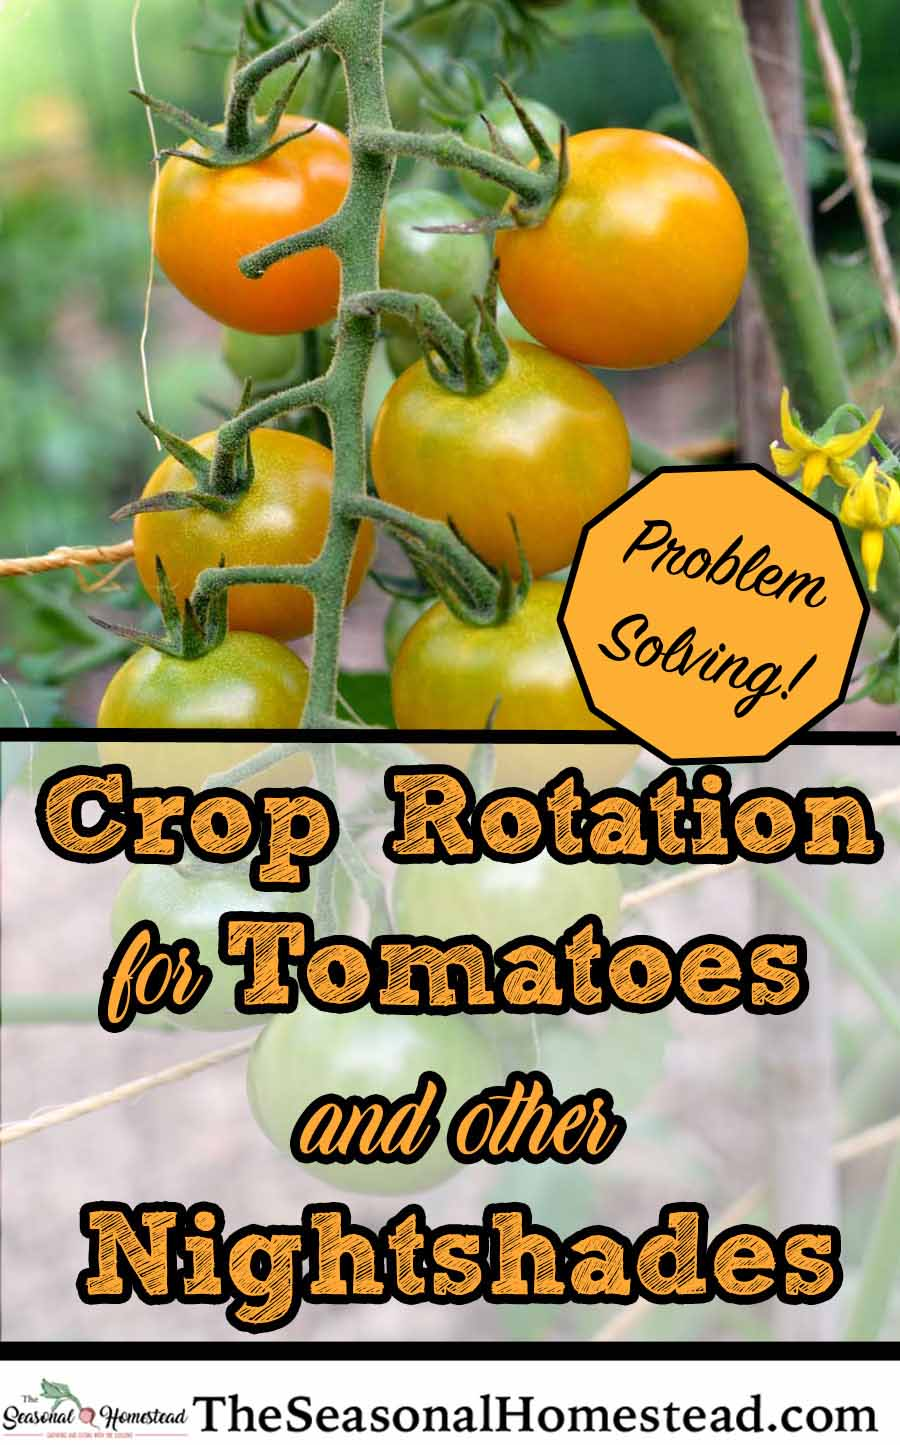 Crop-Rotation-for-Tomatoes-and-other-NightShades-problem-solving.jpg